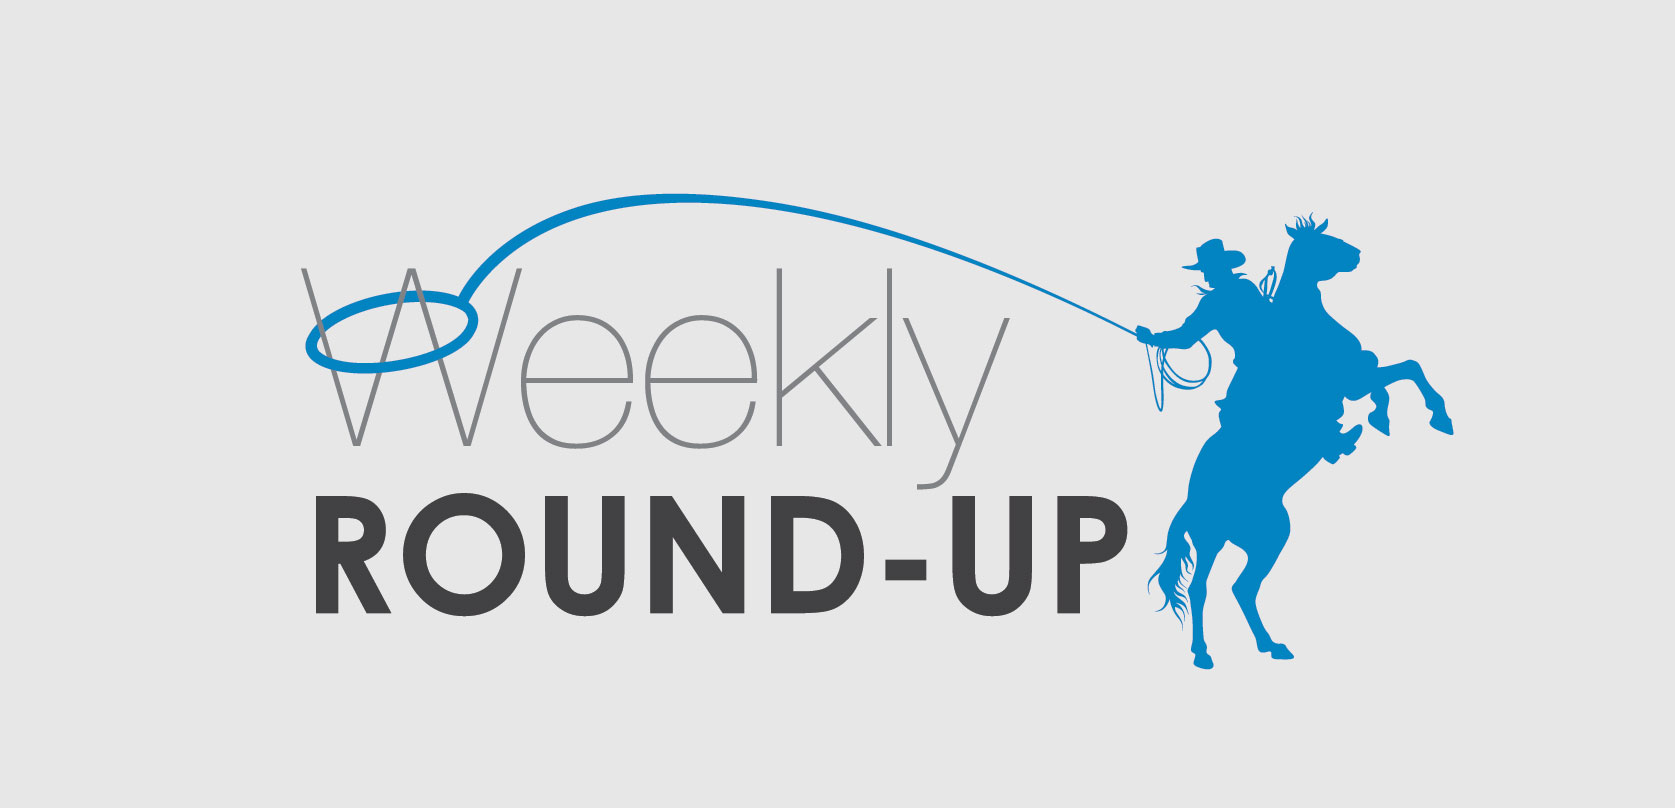 weekly roundup, change blog post, communication blog, best of blog posts, david grossman